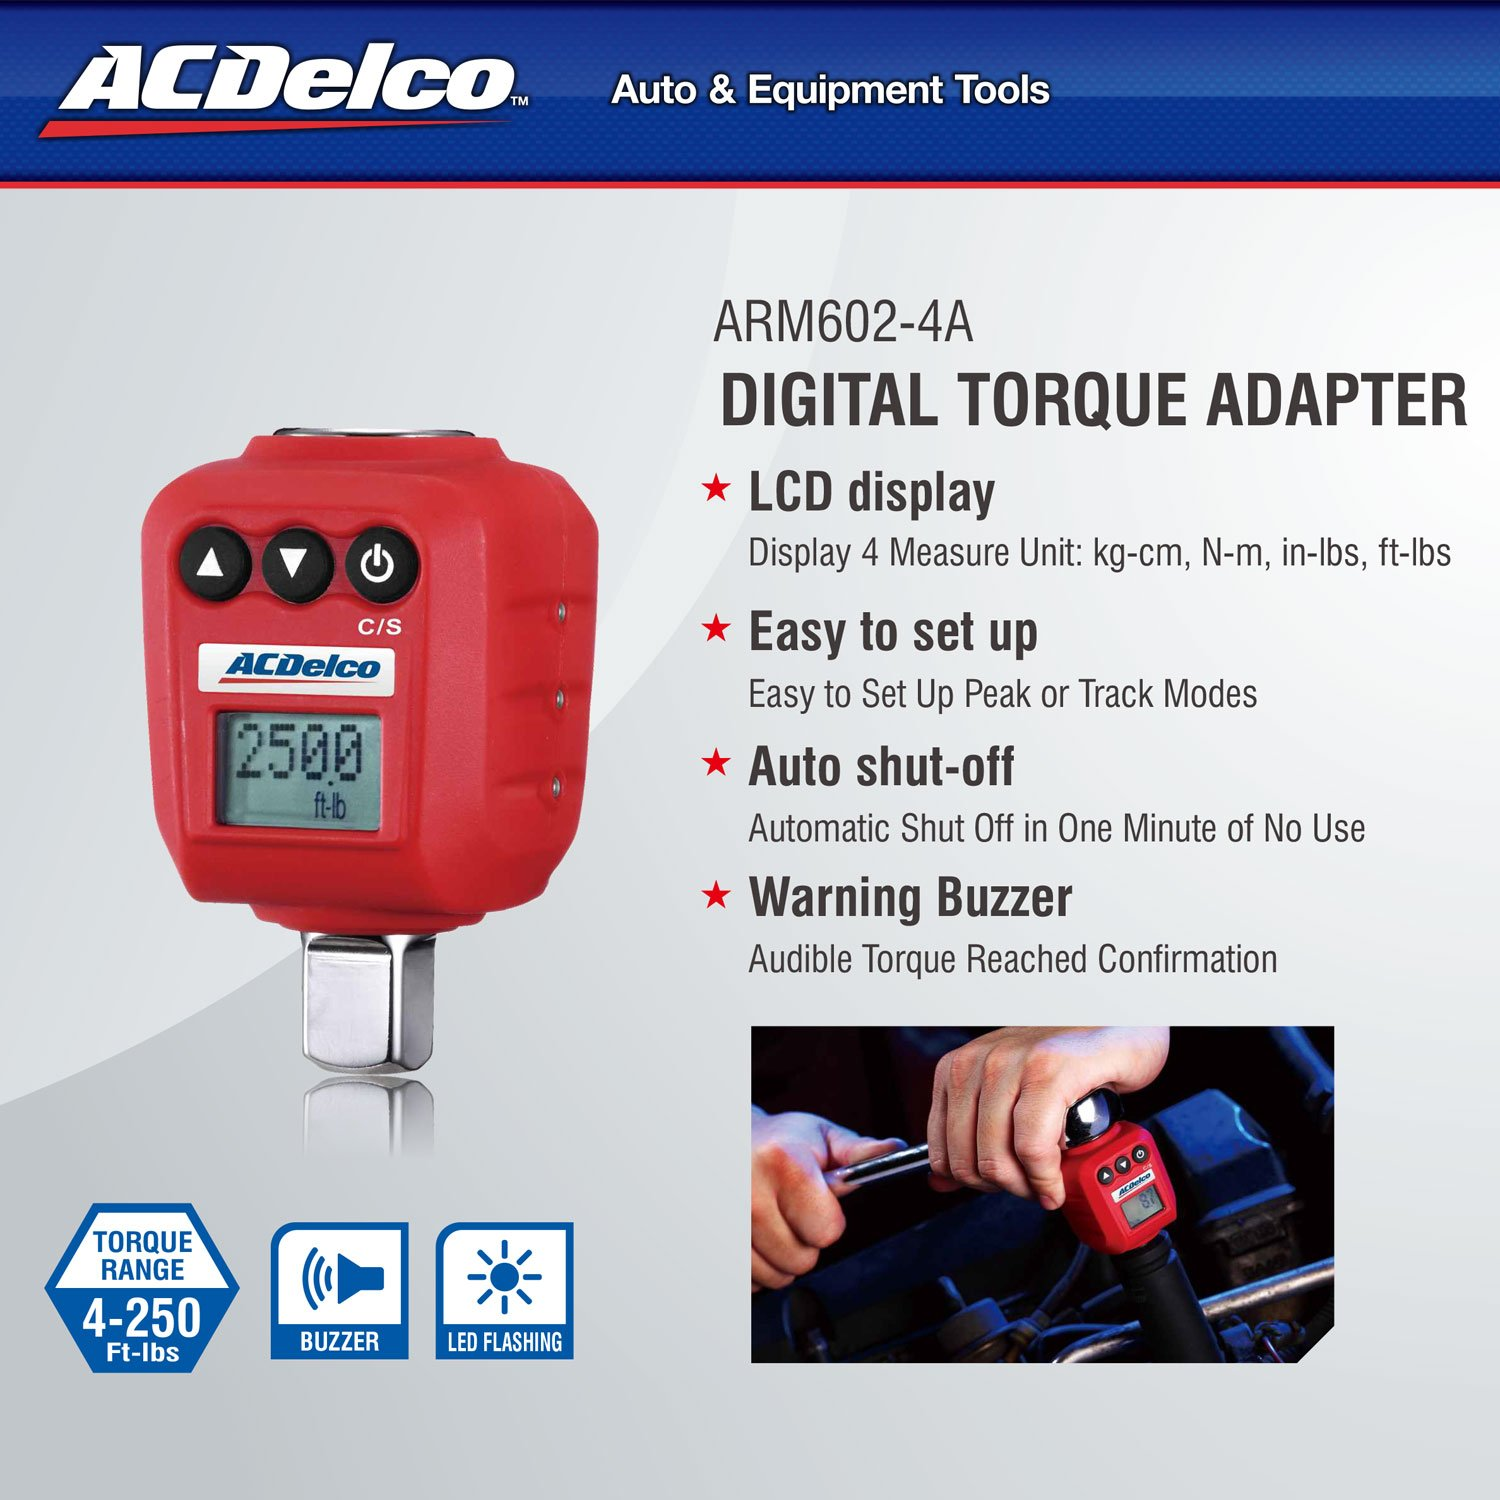 ACDelco 1/2'' Digital Torque Adapter (4-250 ft-lbs) with Audible/LED Alert ARM602-4A by ACDelco Tools (Image #2)